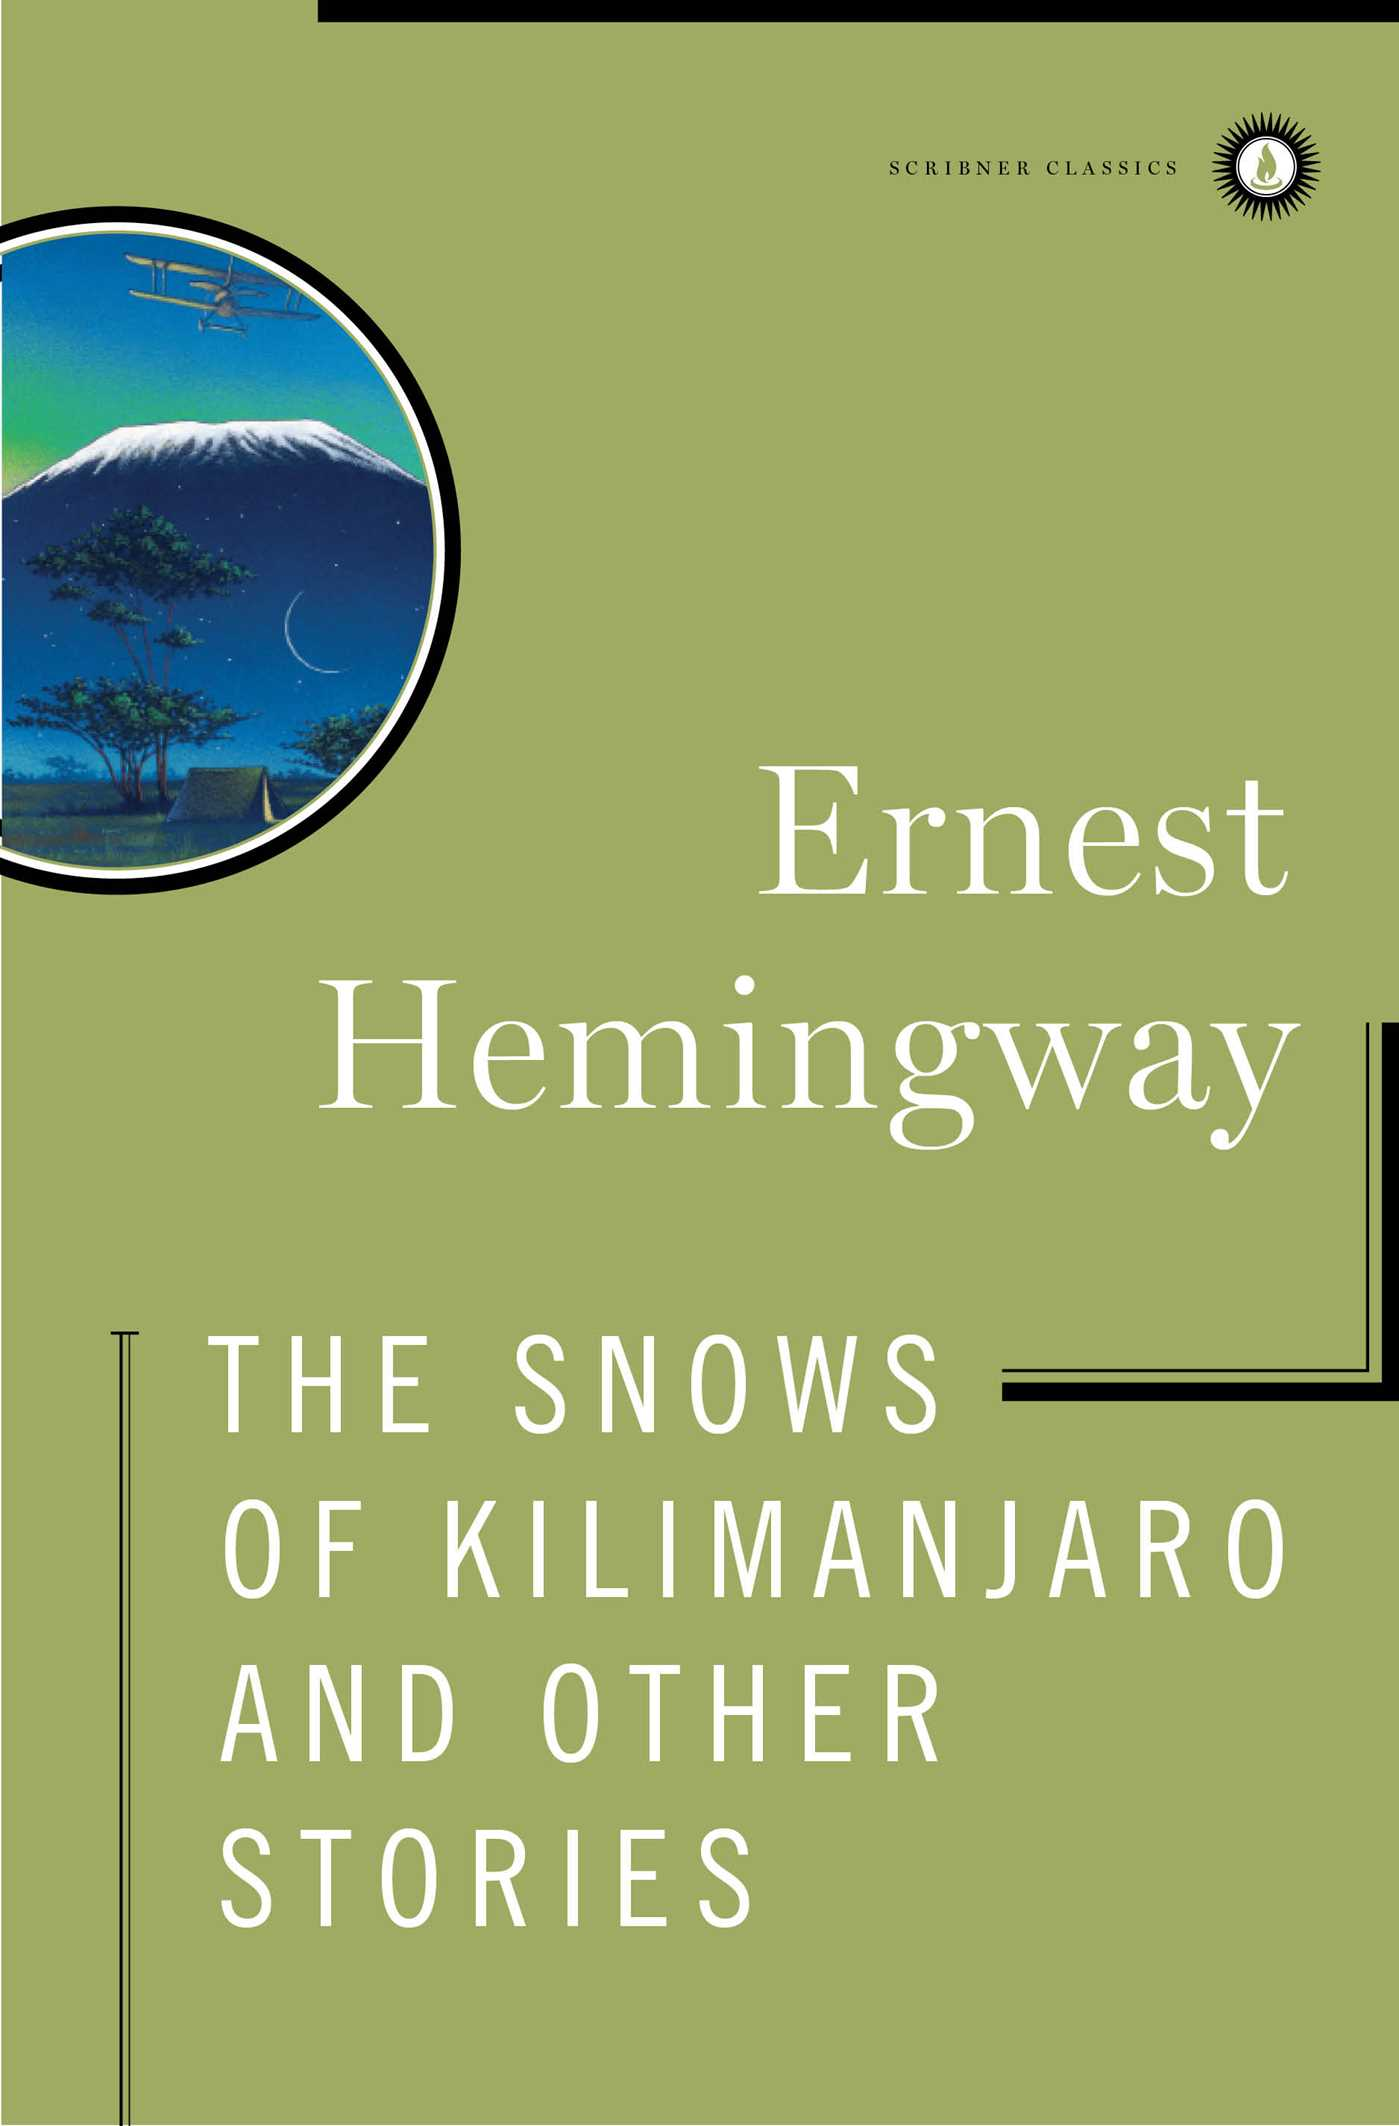 an essay on the snows of kilimanjaro by ernest hemingway The snows of kilimanjaro essay examples  a comparison of the snows of kilimanjaro by ernest hemingway and the death of ivan ilych by leo tolstoy 1,520 words.